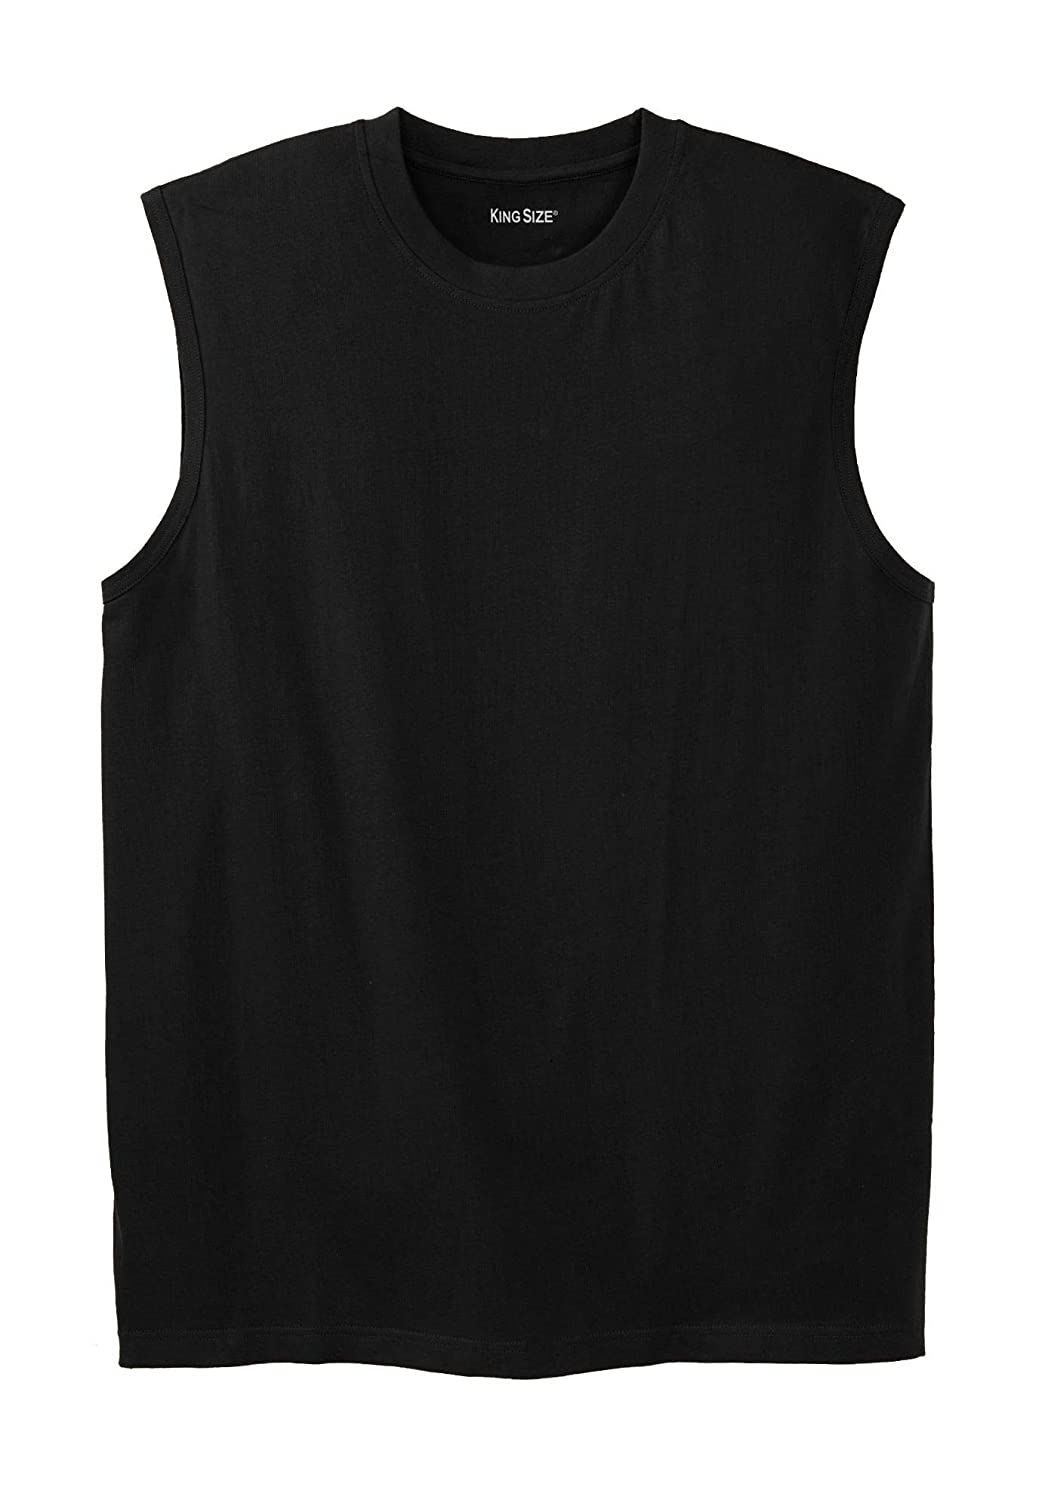 22f84c41 KingSize Men's Big & Tall Shrink-Less Lightweight Sleeveless Muscle T-Shirt  at Amazon Men's Clothing store: